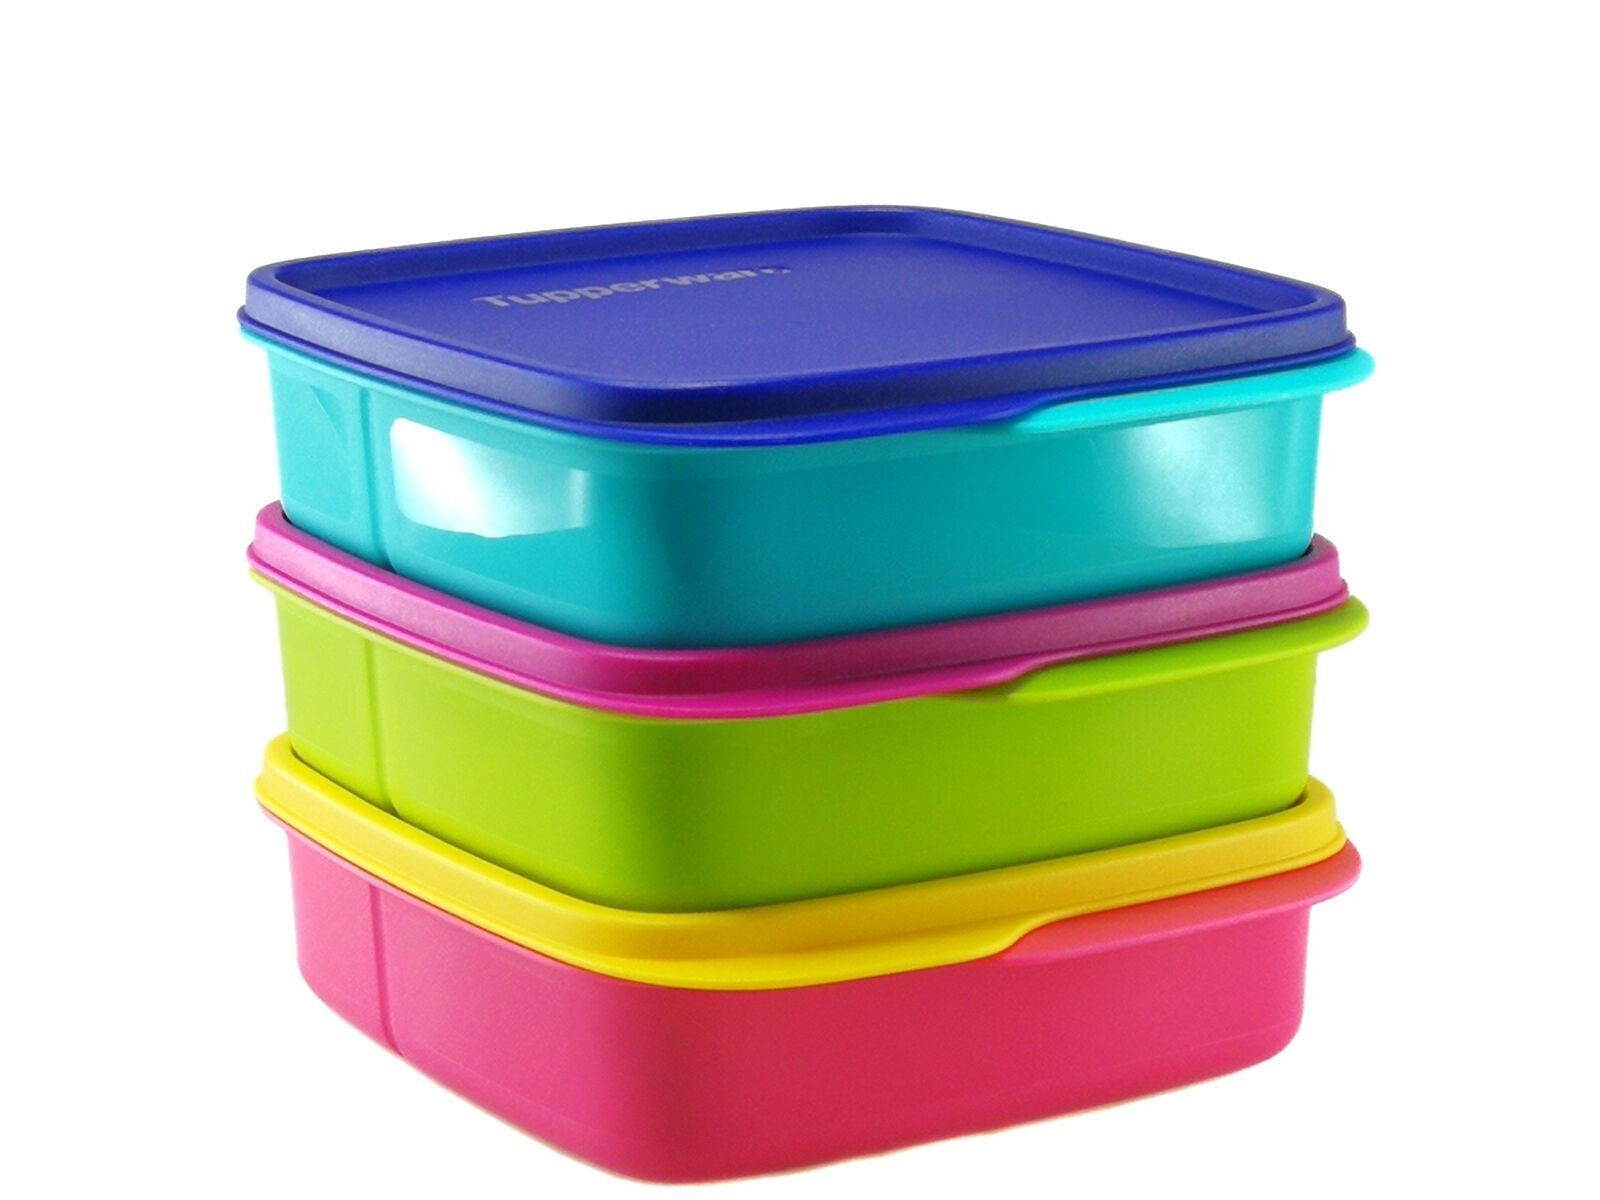 bento lunch box tupperware tupperware divided bento lunch. Black Bedroom Furniture Sets. Home Design Ideas